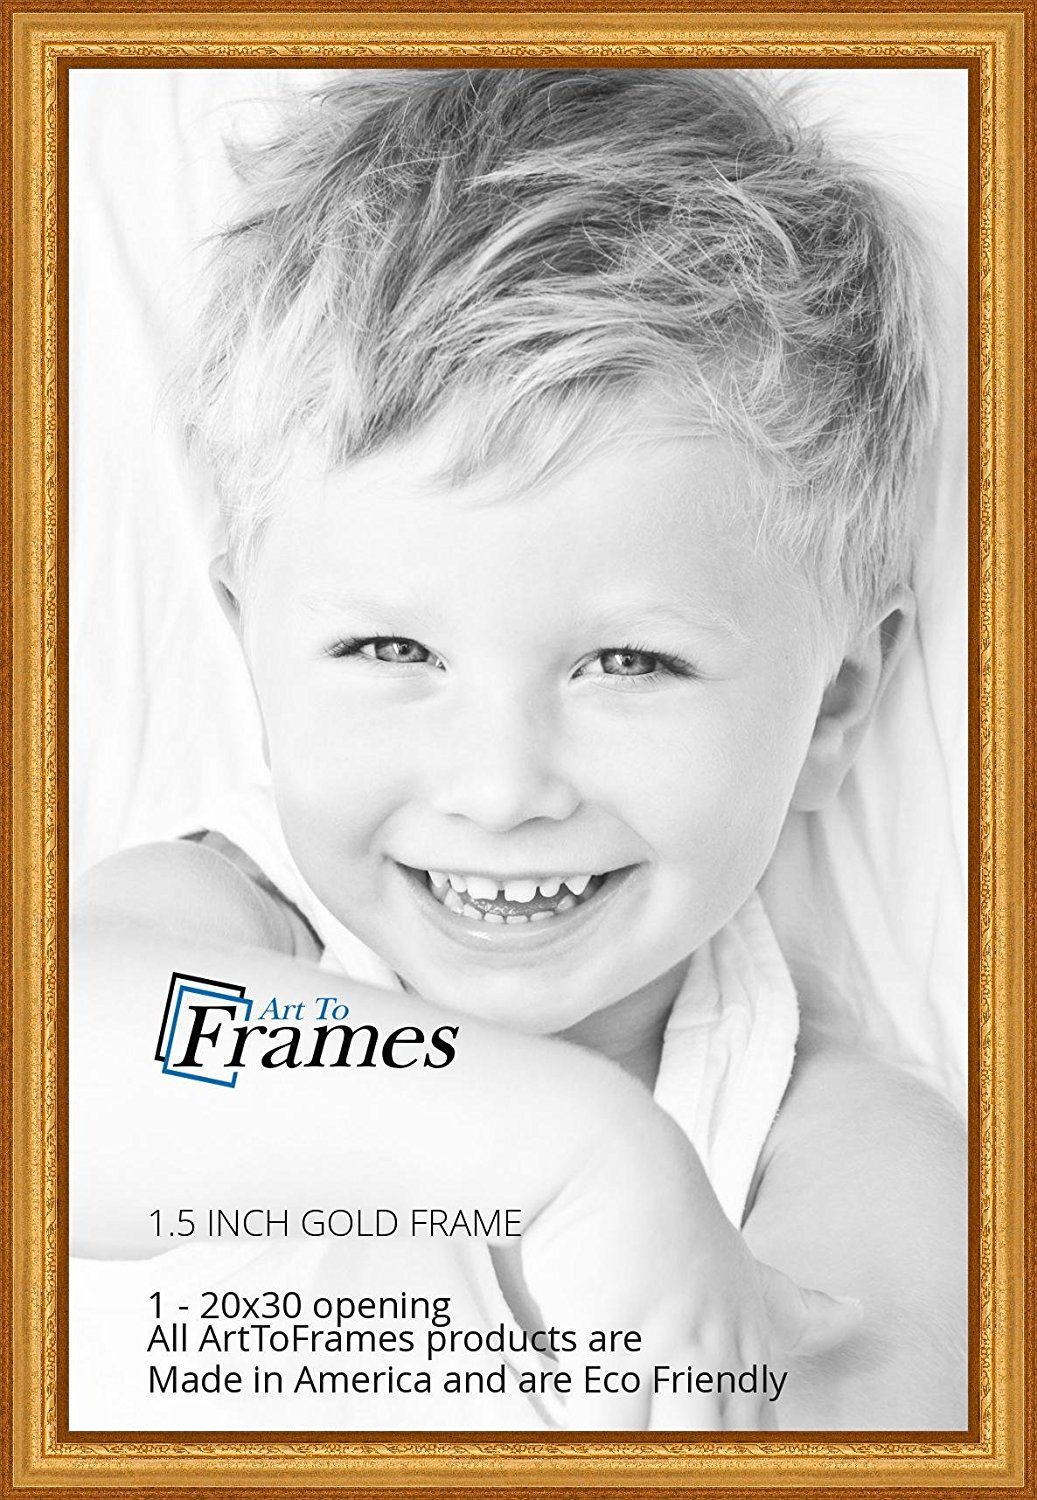 ArtToFrames 20x30 inch Gold Speckeled Wood Picture Frame, WOMTI-795-20x30